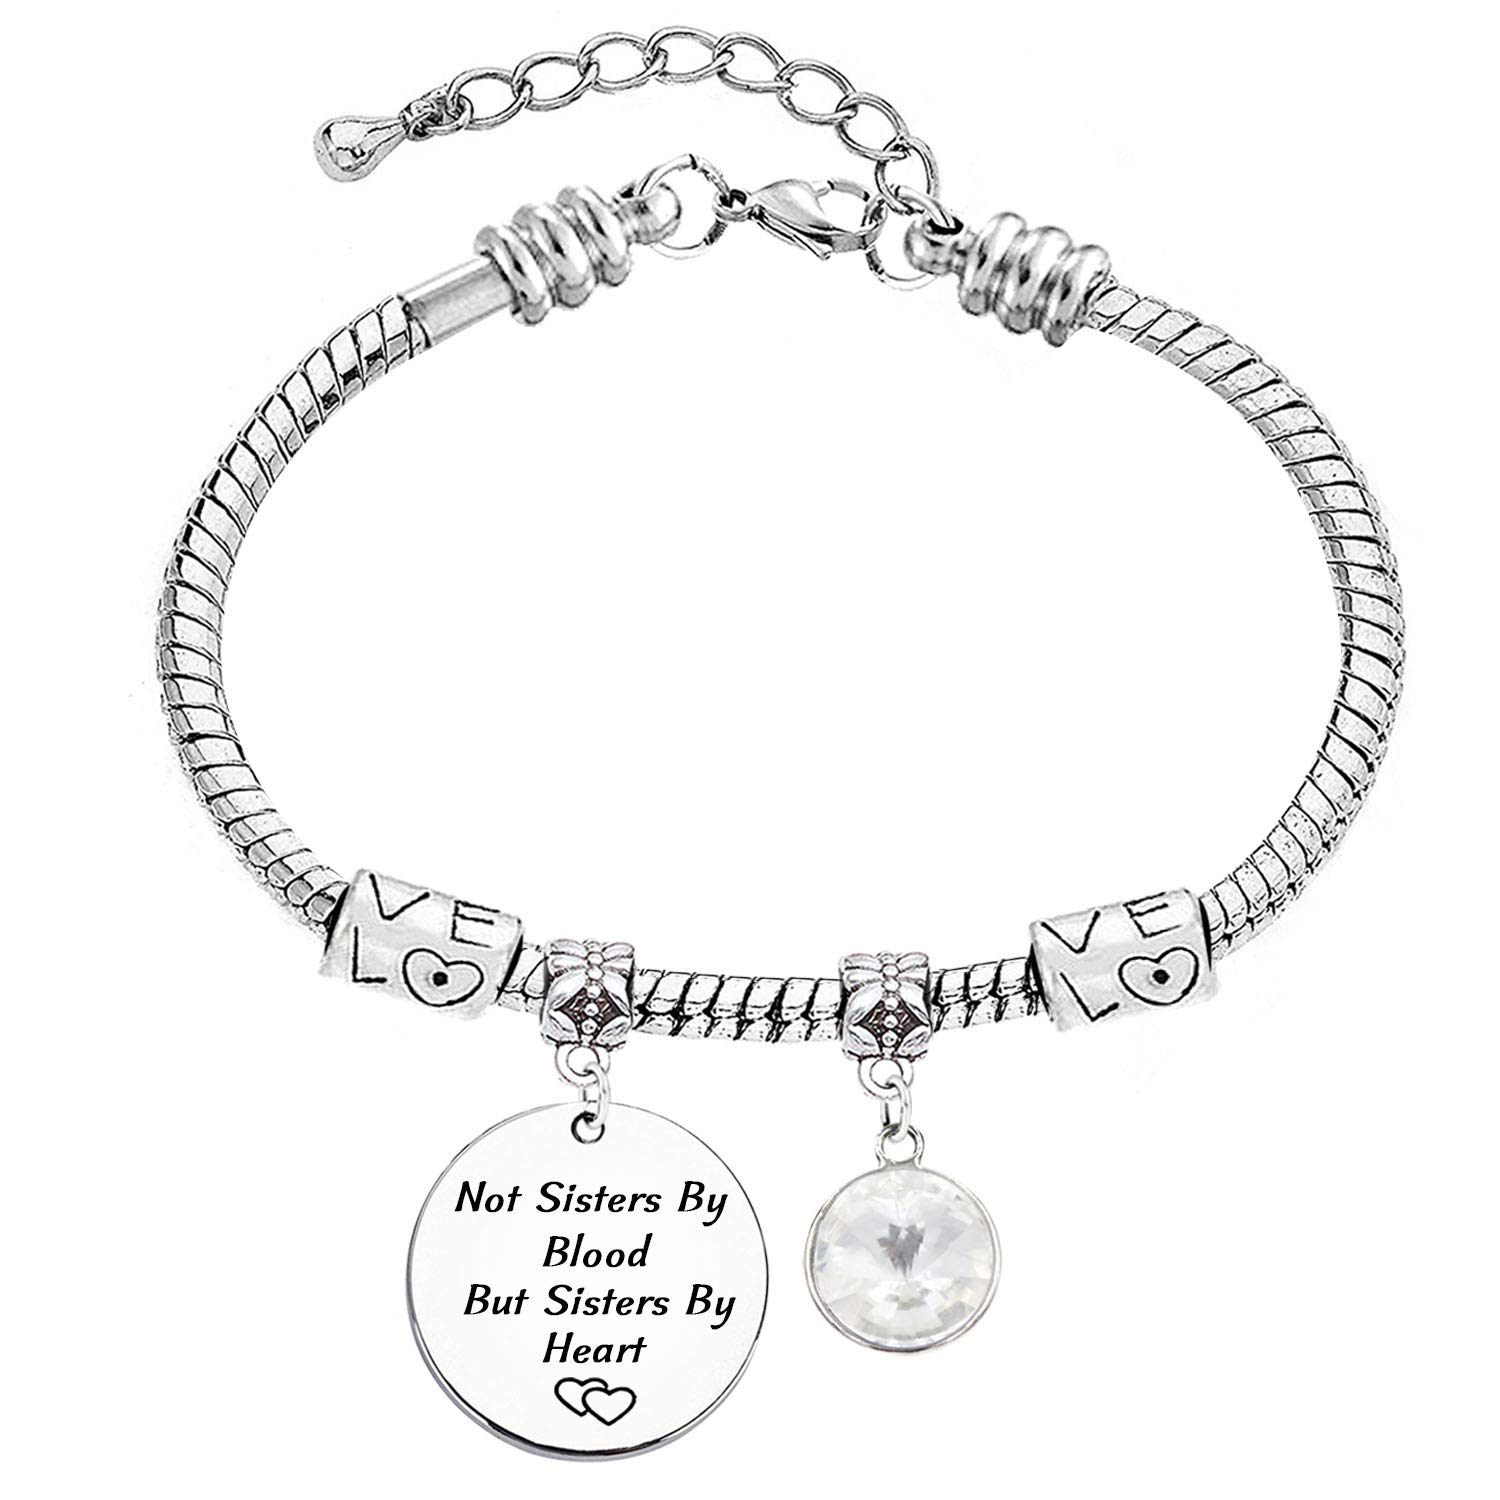 LINKY Best Friends Jewelry Not Sisters by Blood But Sisters by Heart Charm Stainless Steel Snake Chain Bracelet 12 Color Crystal Charm